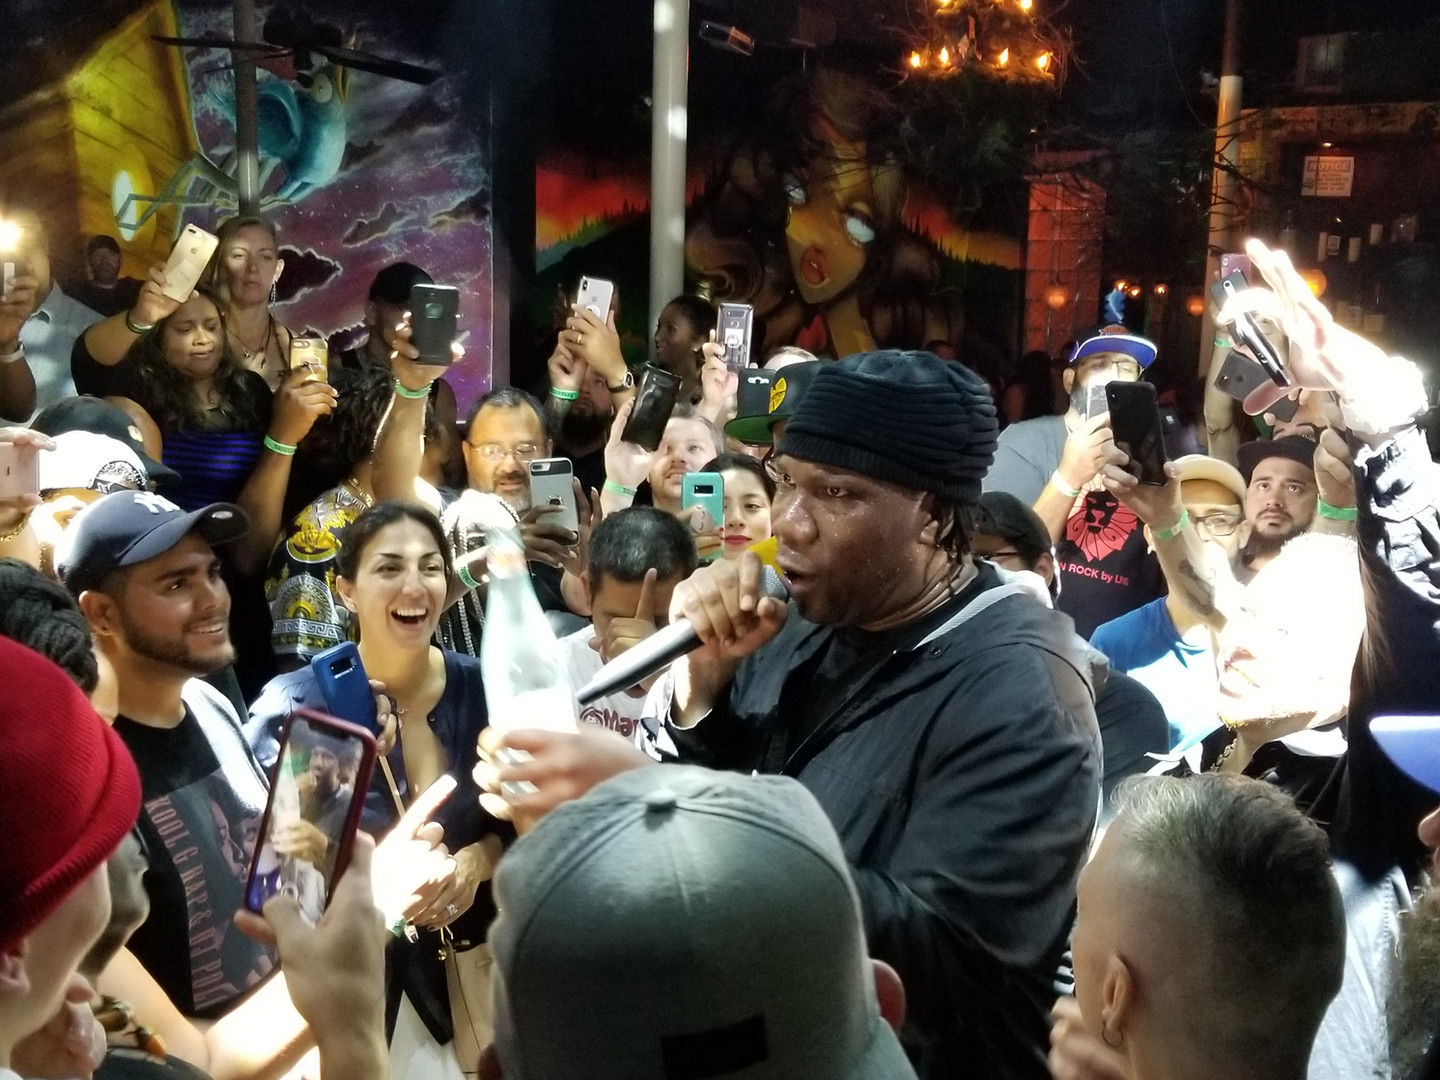 KRS-1 preforming in the crowd